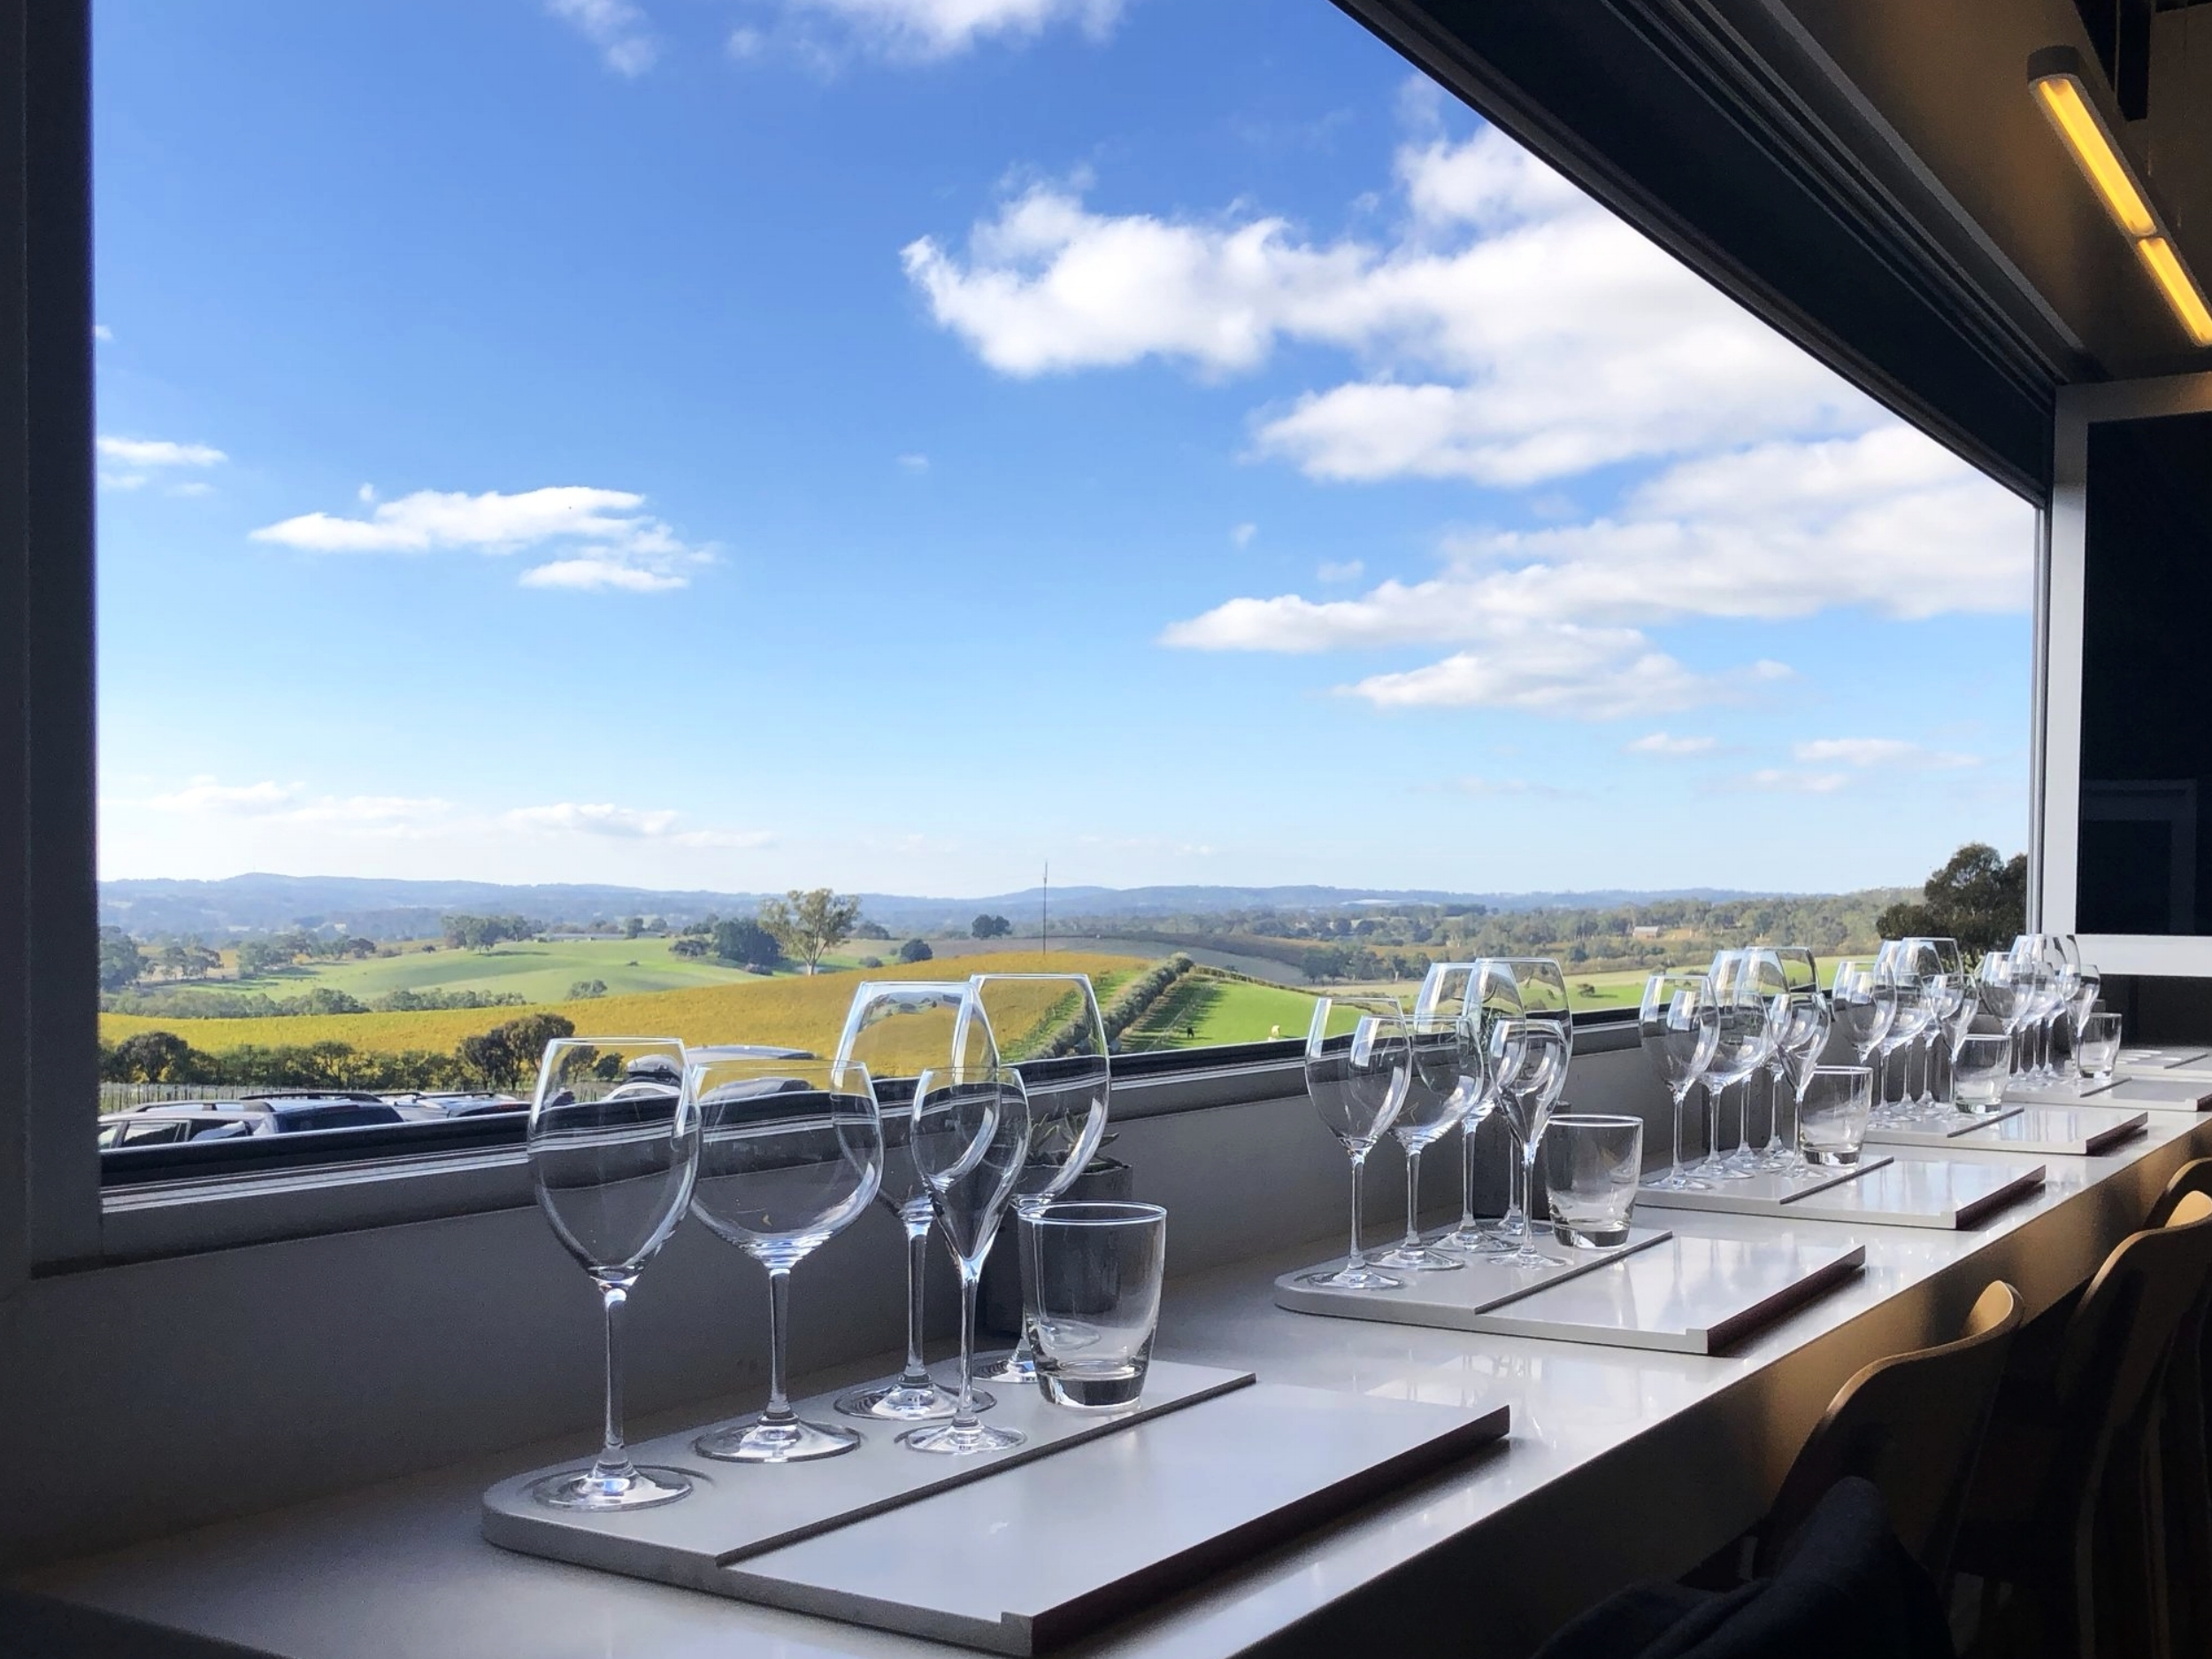 STUNNING view from The Lane Vineyard cellar door